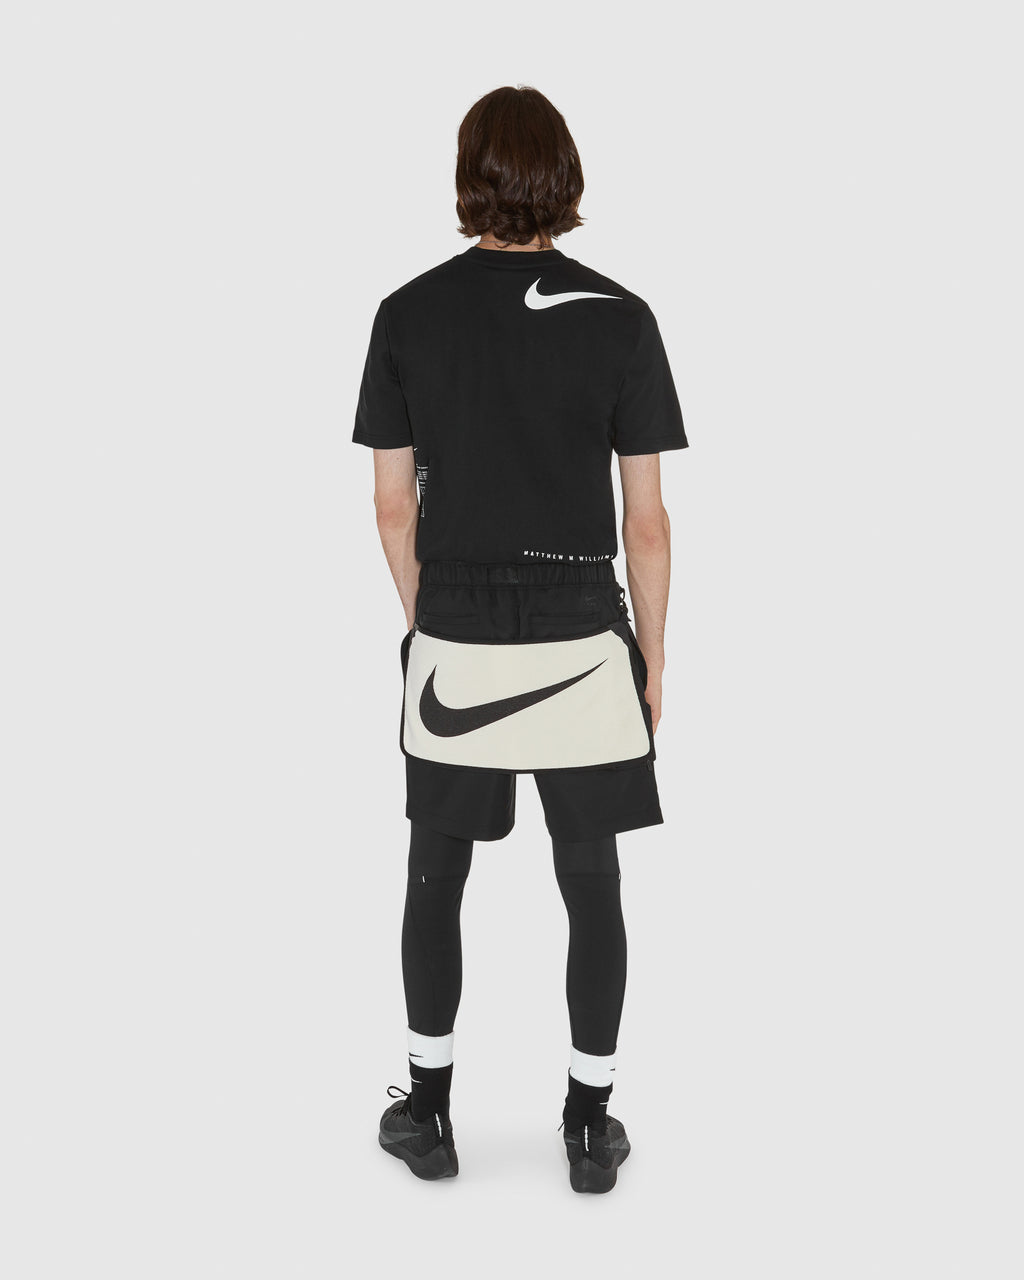 NIKE x MMW Hybrid Short With Tight